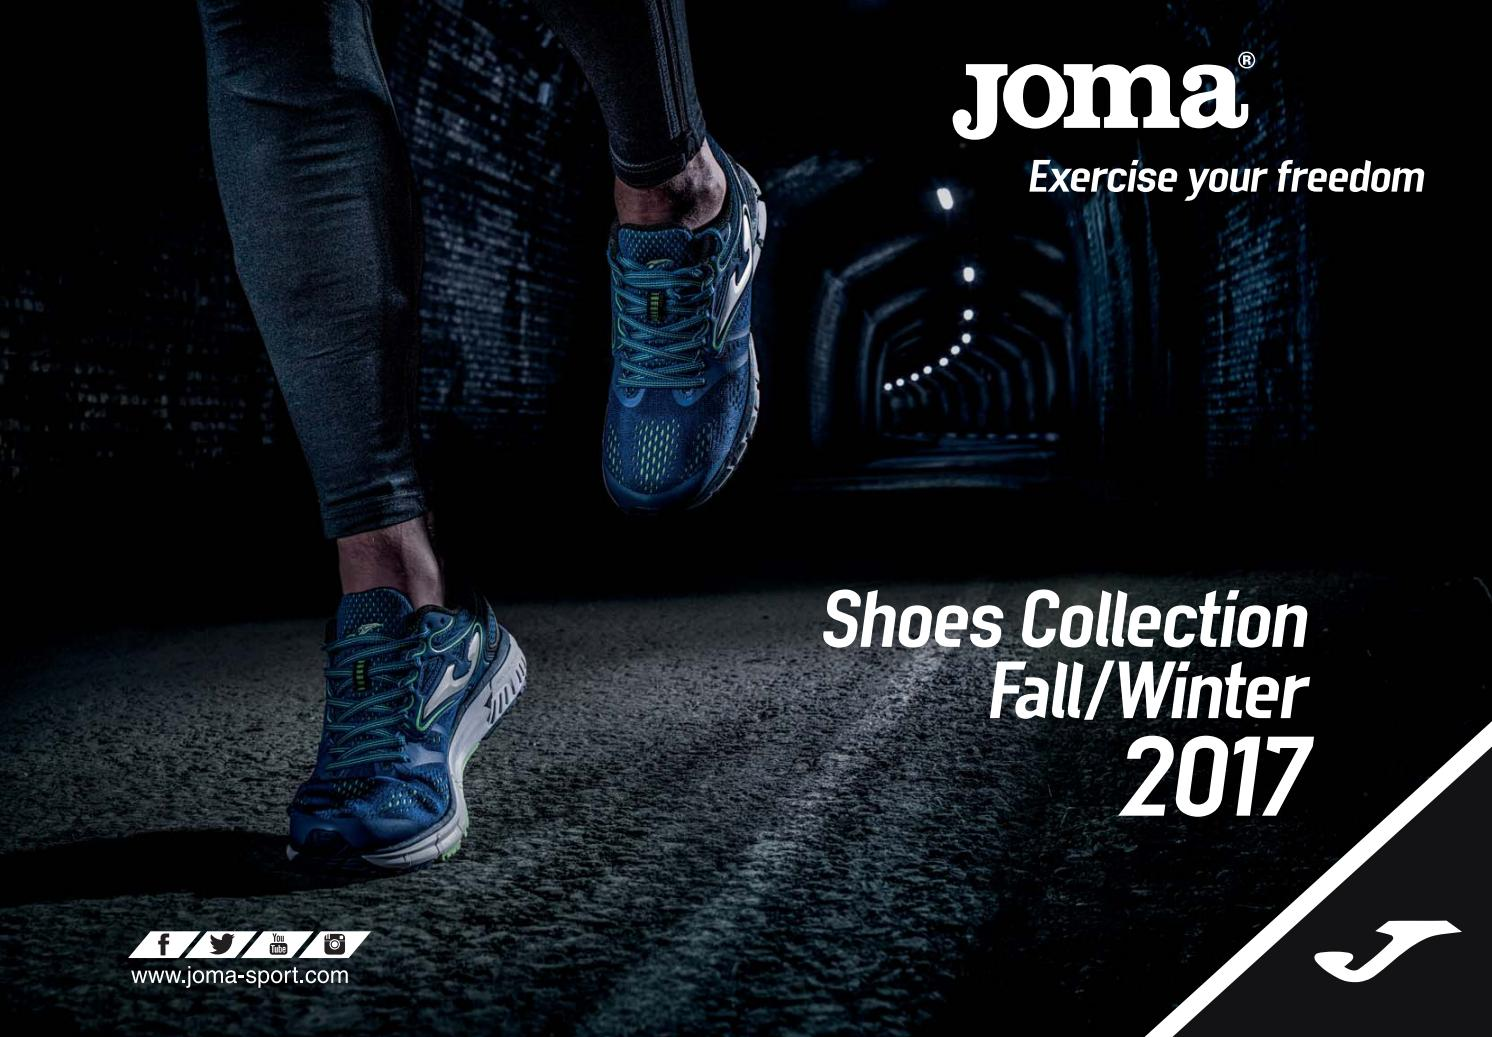 f9ec0b6d1773e JOMA shoes fall winter 2017 by joma-sport - issuu